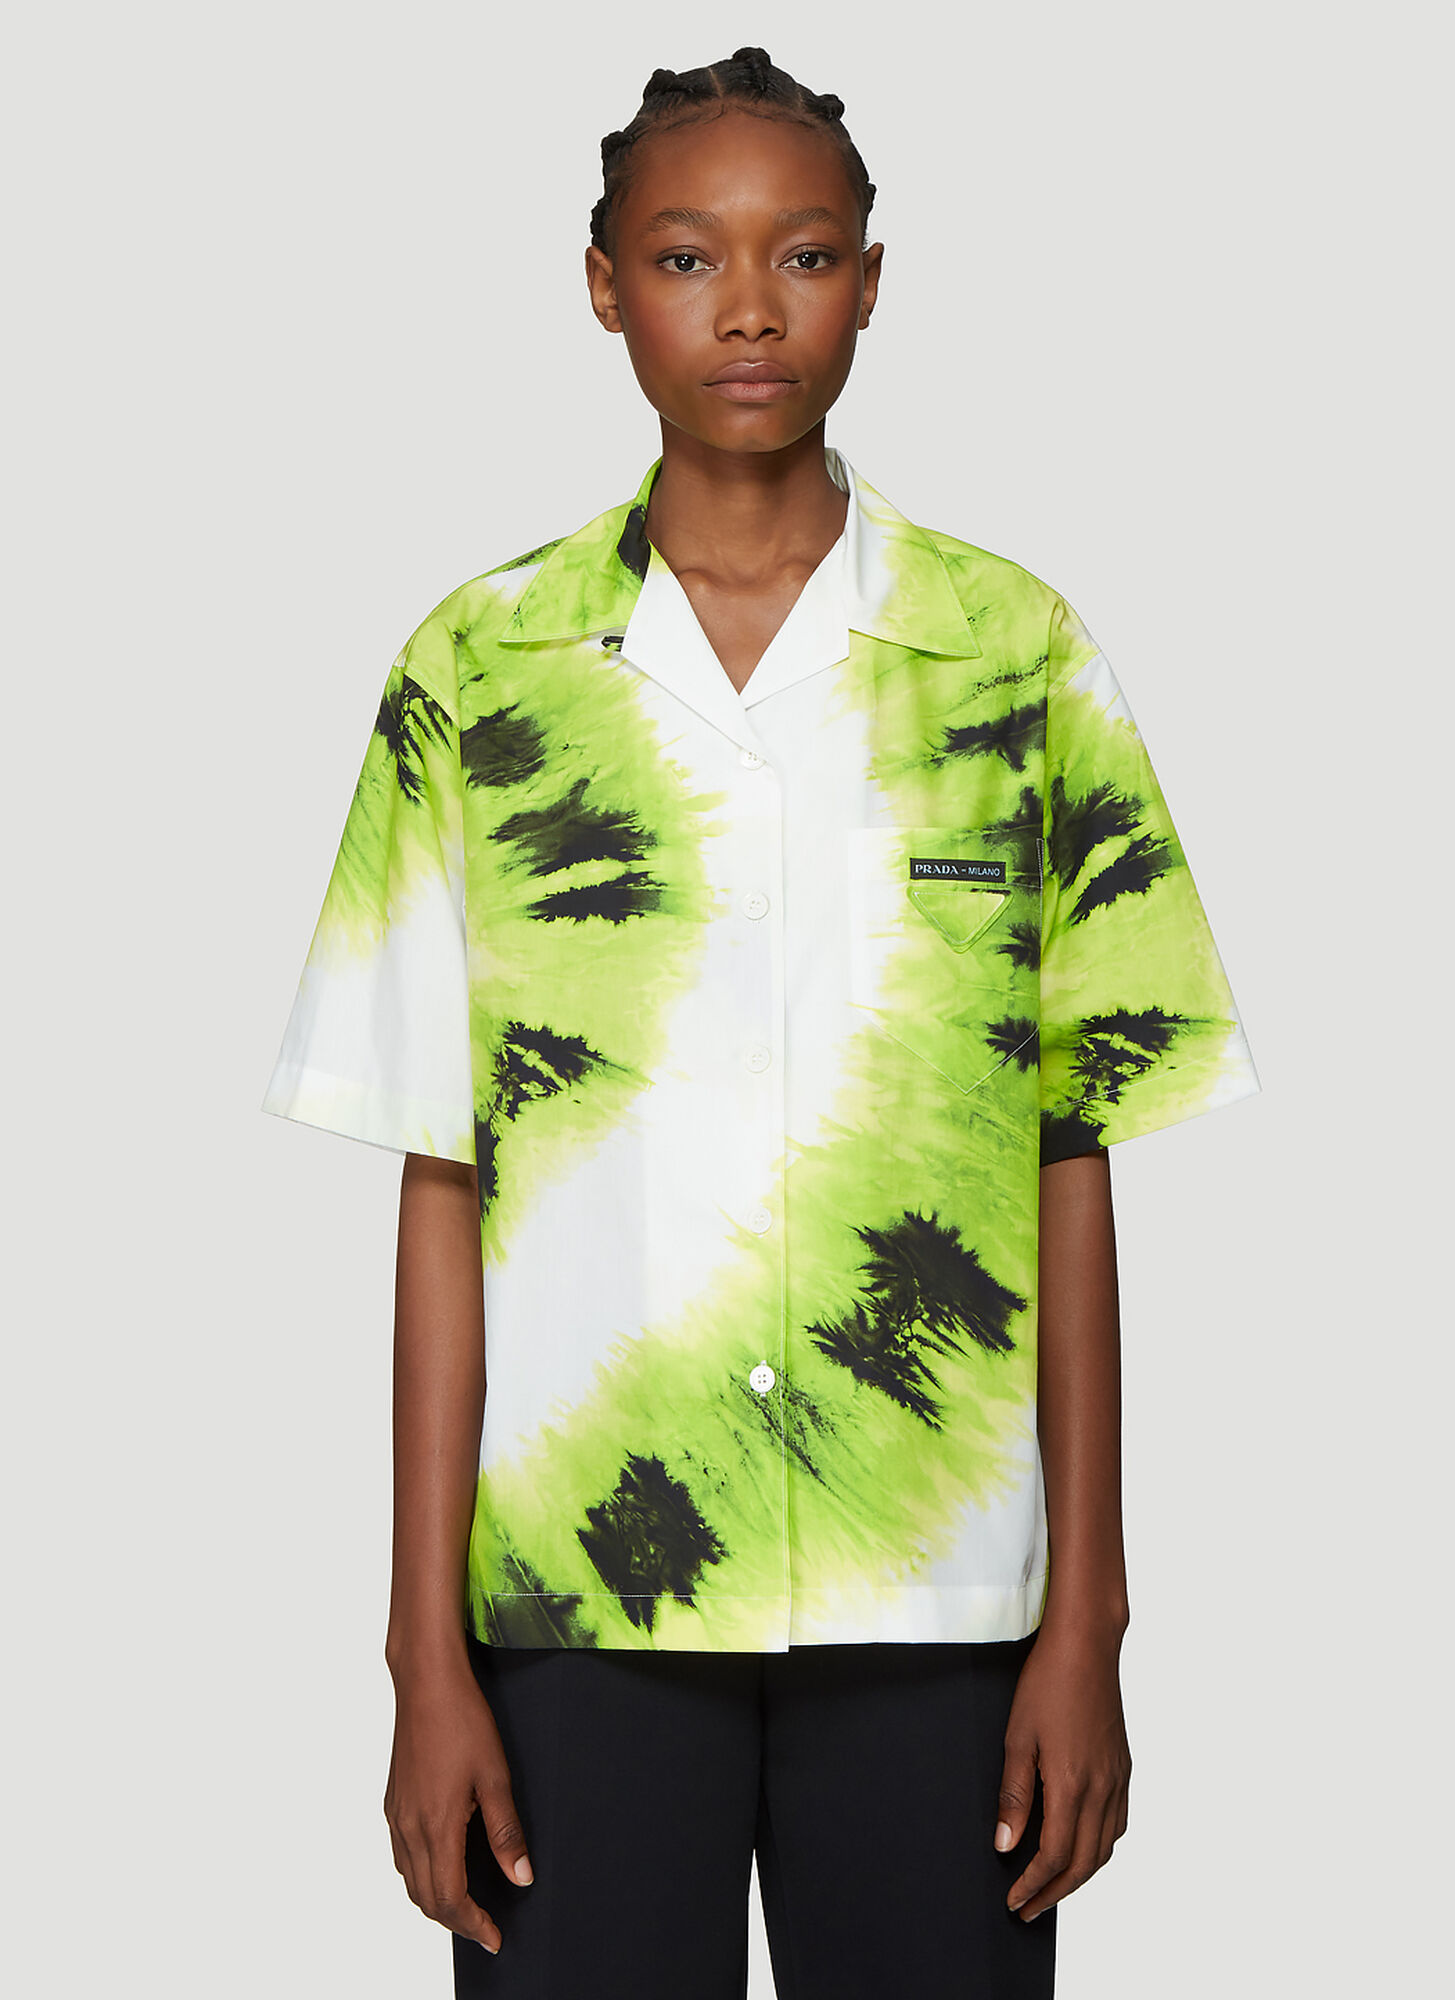 Prada Tie Dye Shirt in Green